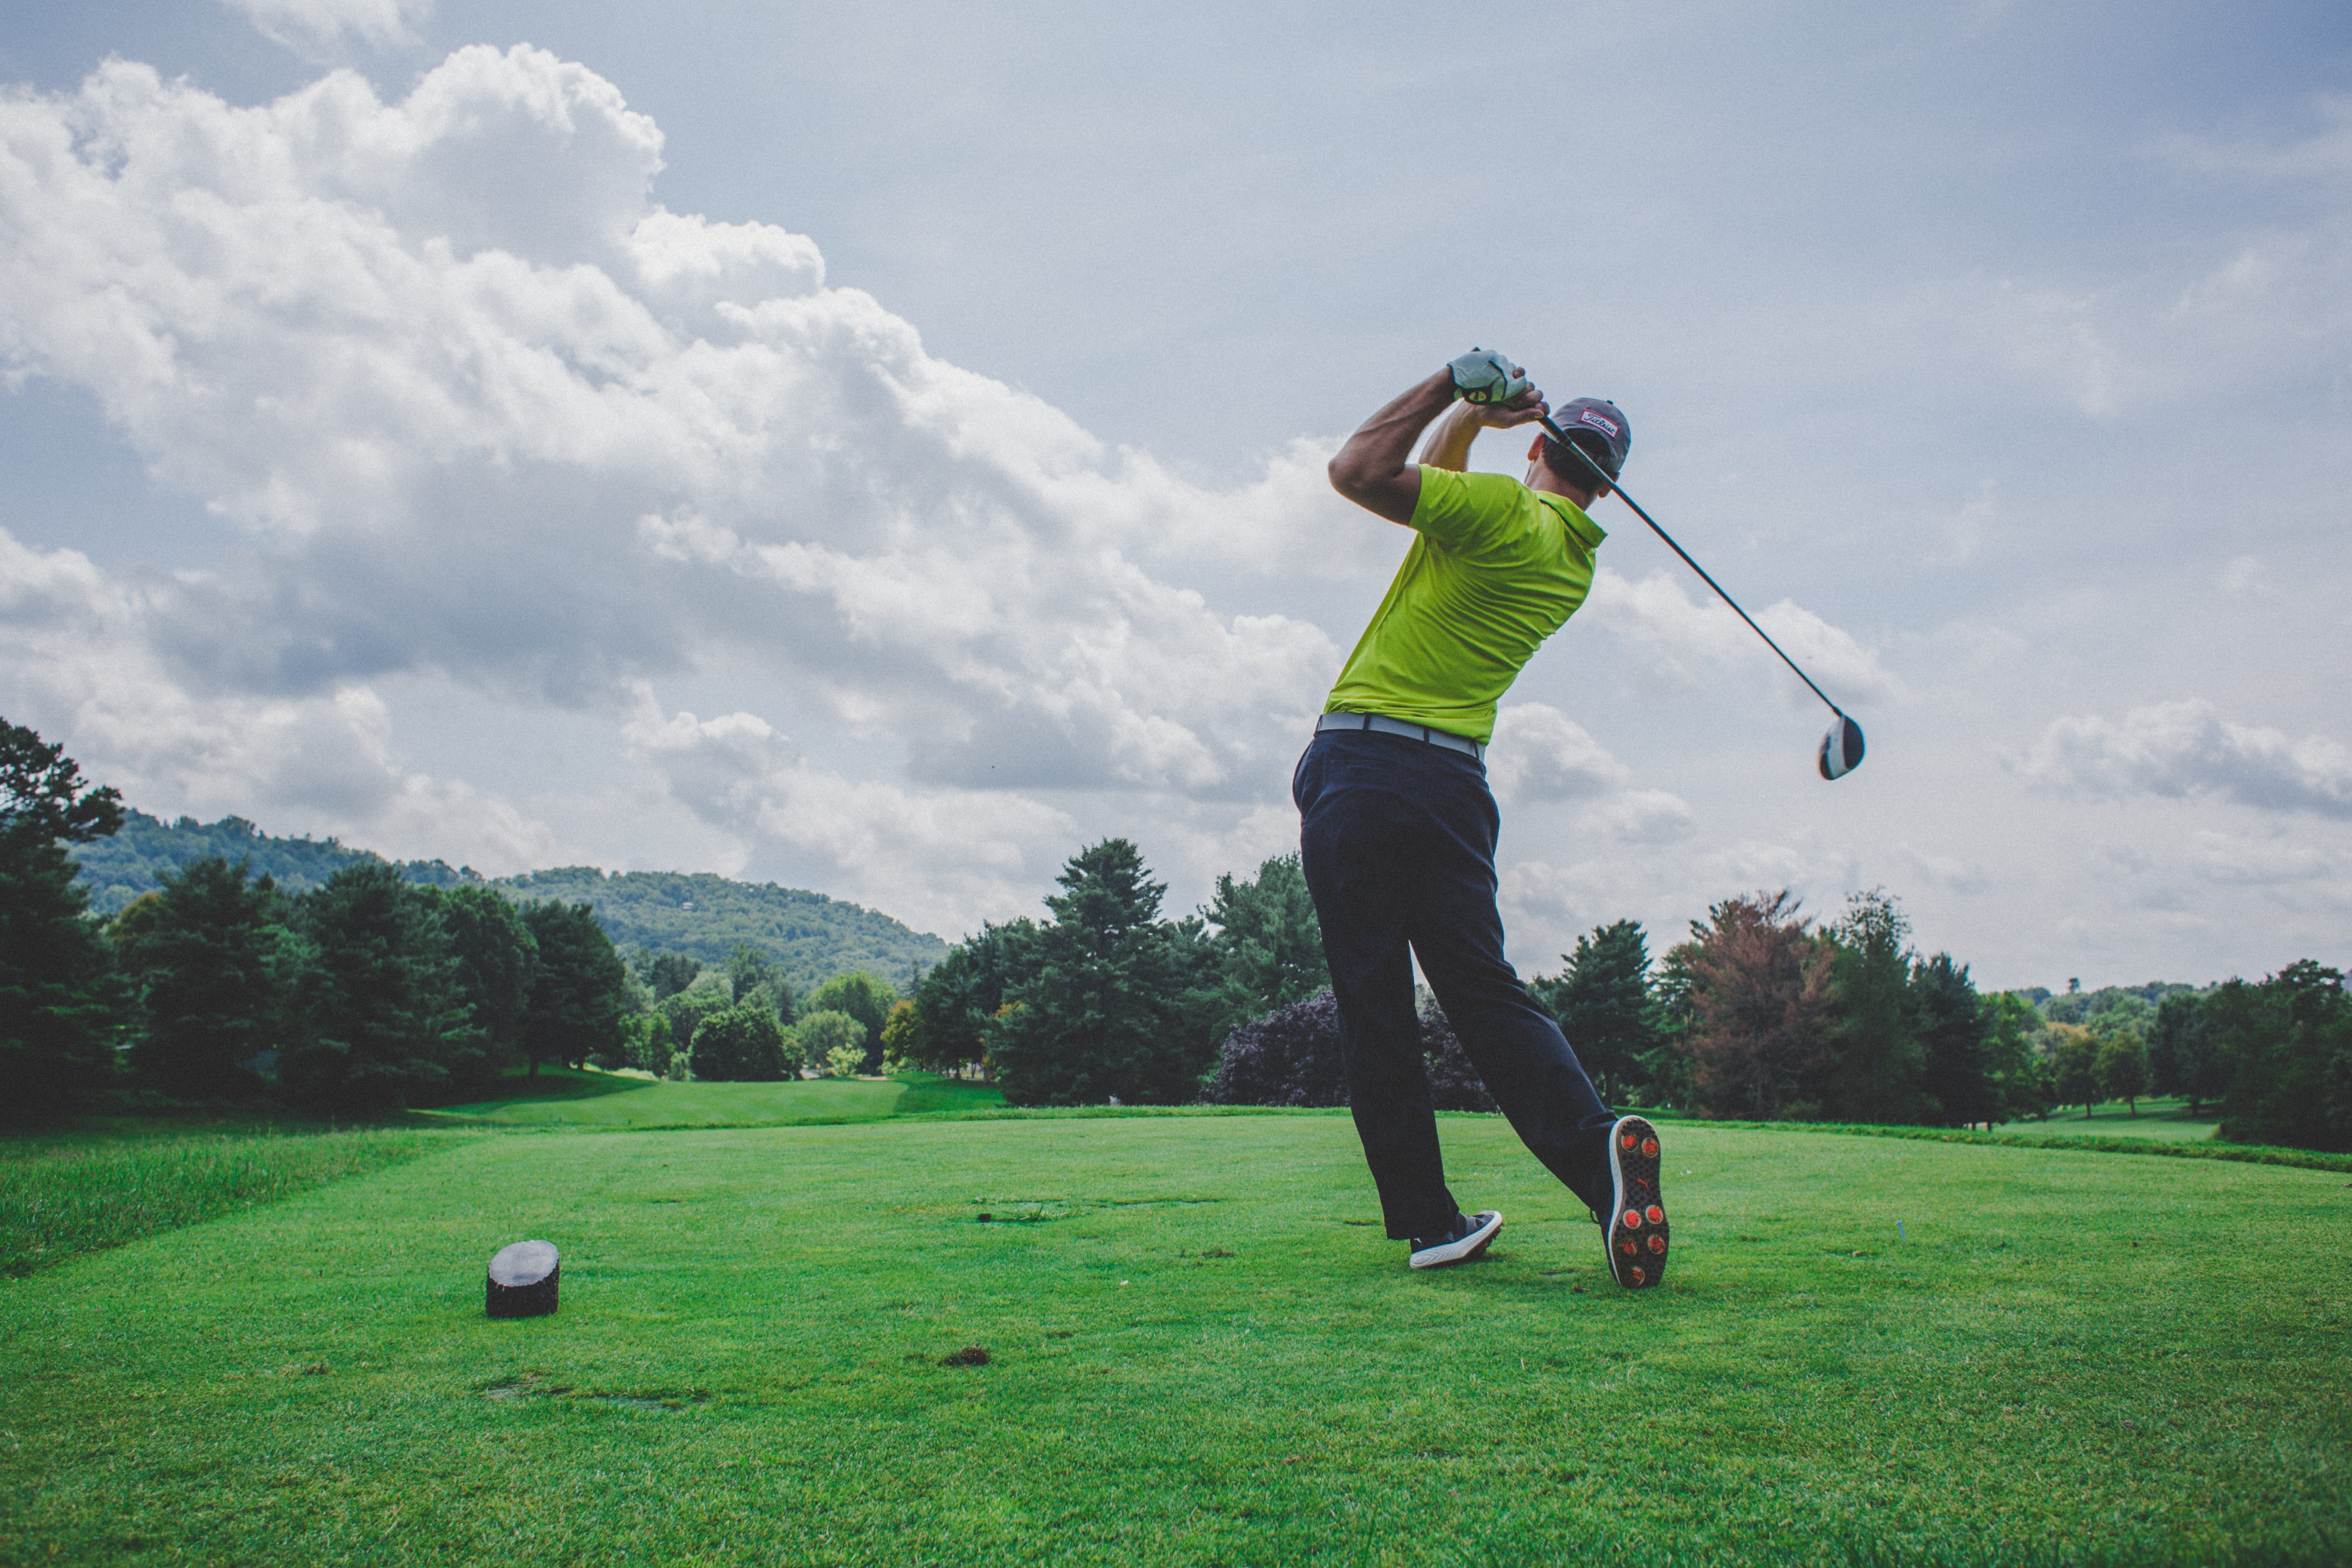 Golfer teeing off on a golf course